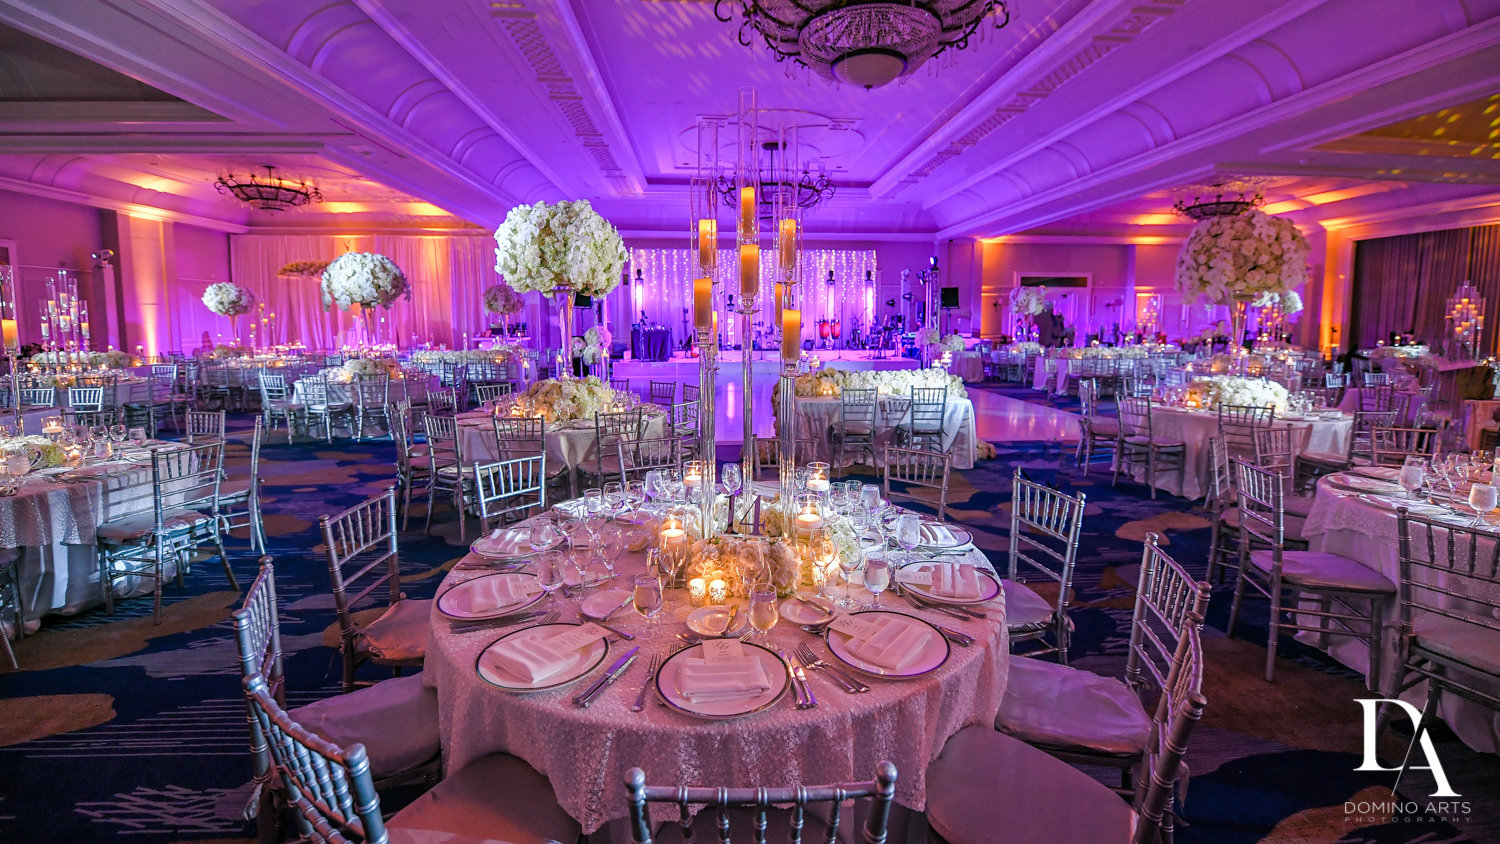 luxury decor at A Ritz Carlton Wedding in Key Biscayne by Domino Arts Photography